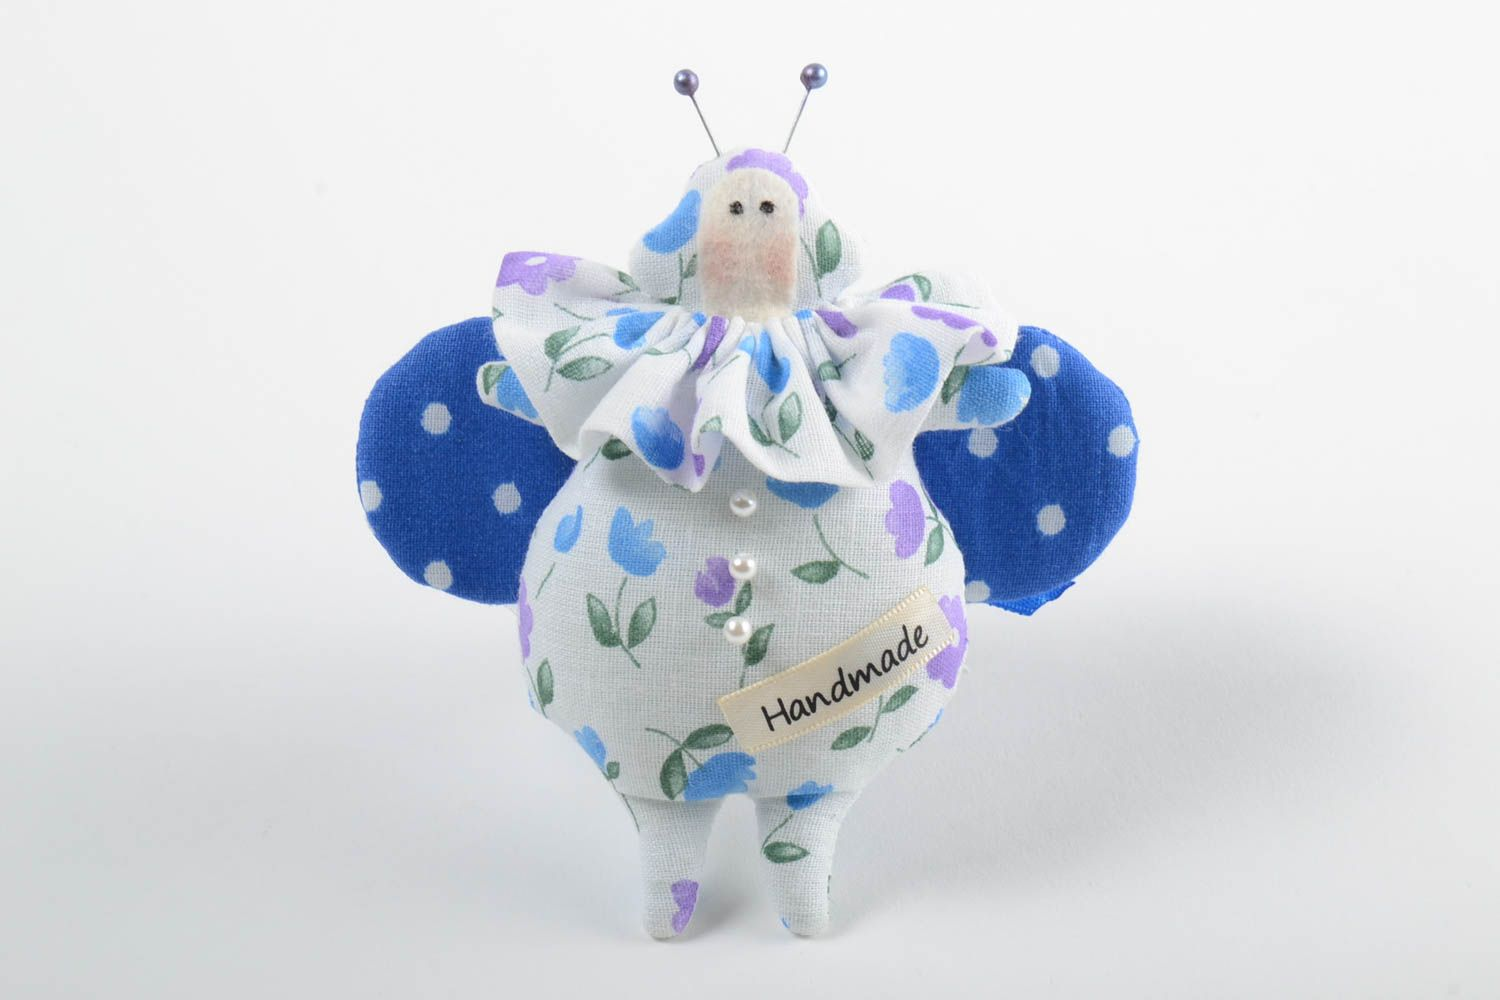 Beautiful homemade fabric toy stuffed soft toy collectible rag doll gift ideas photo 2